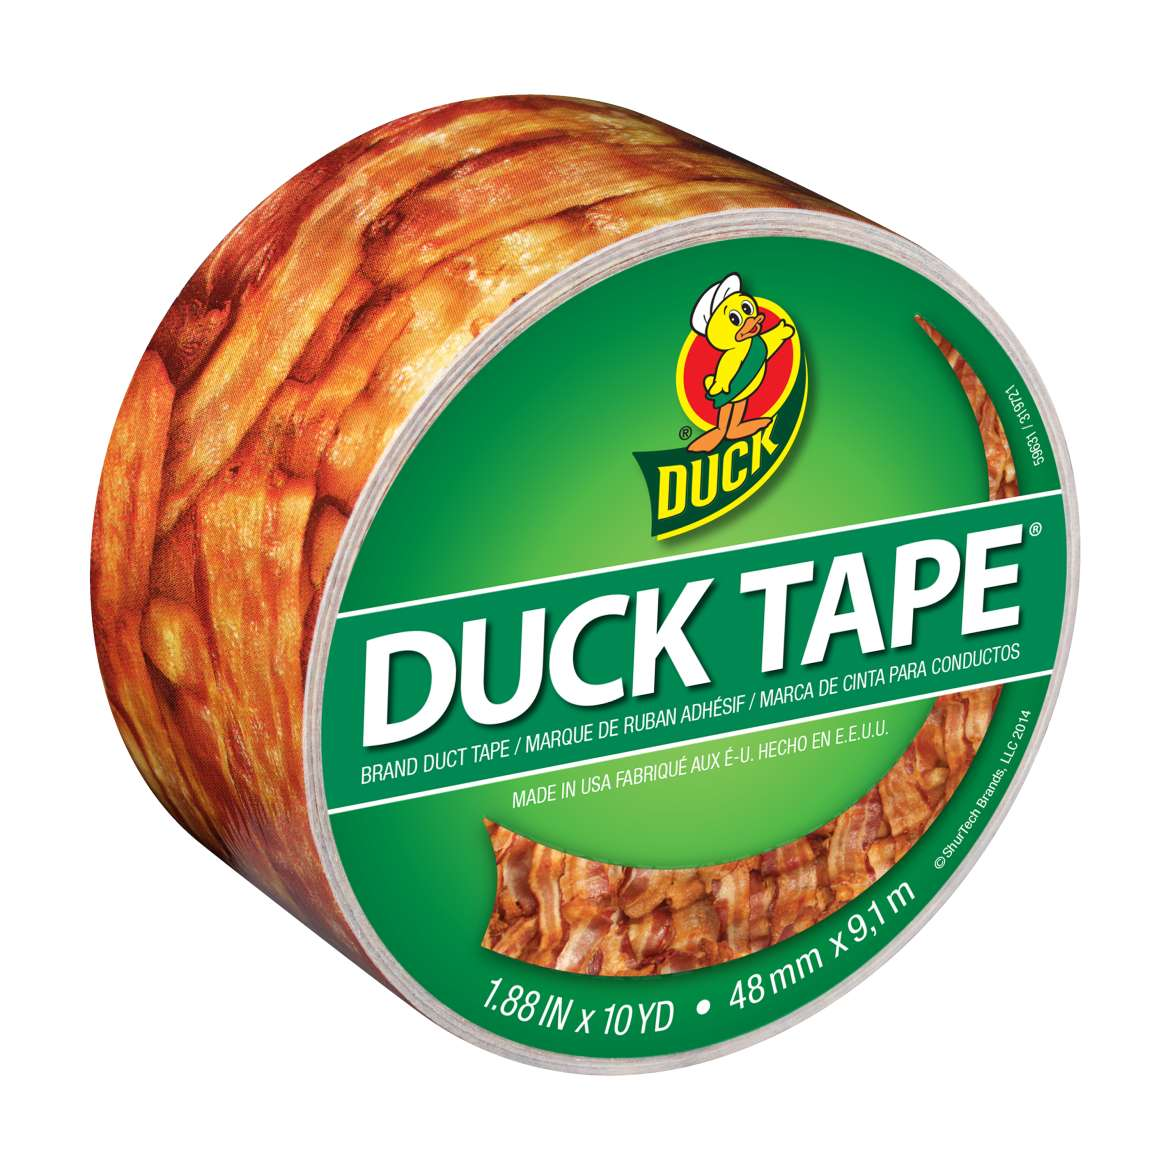 Printed Duck Tape® Brand Duct Tape - Bacon, 1.88 in. x 10 yd. Image